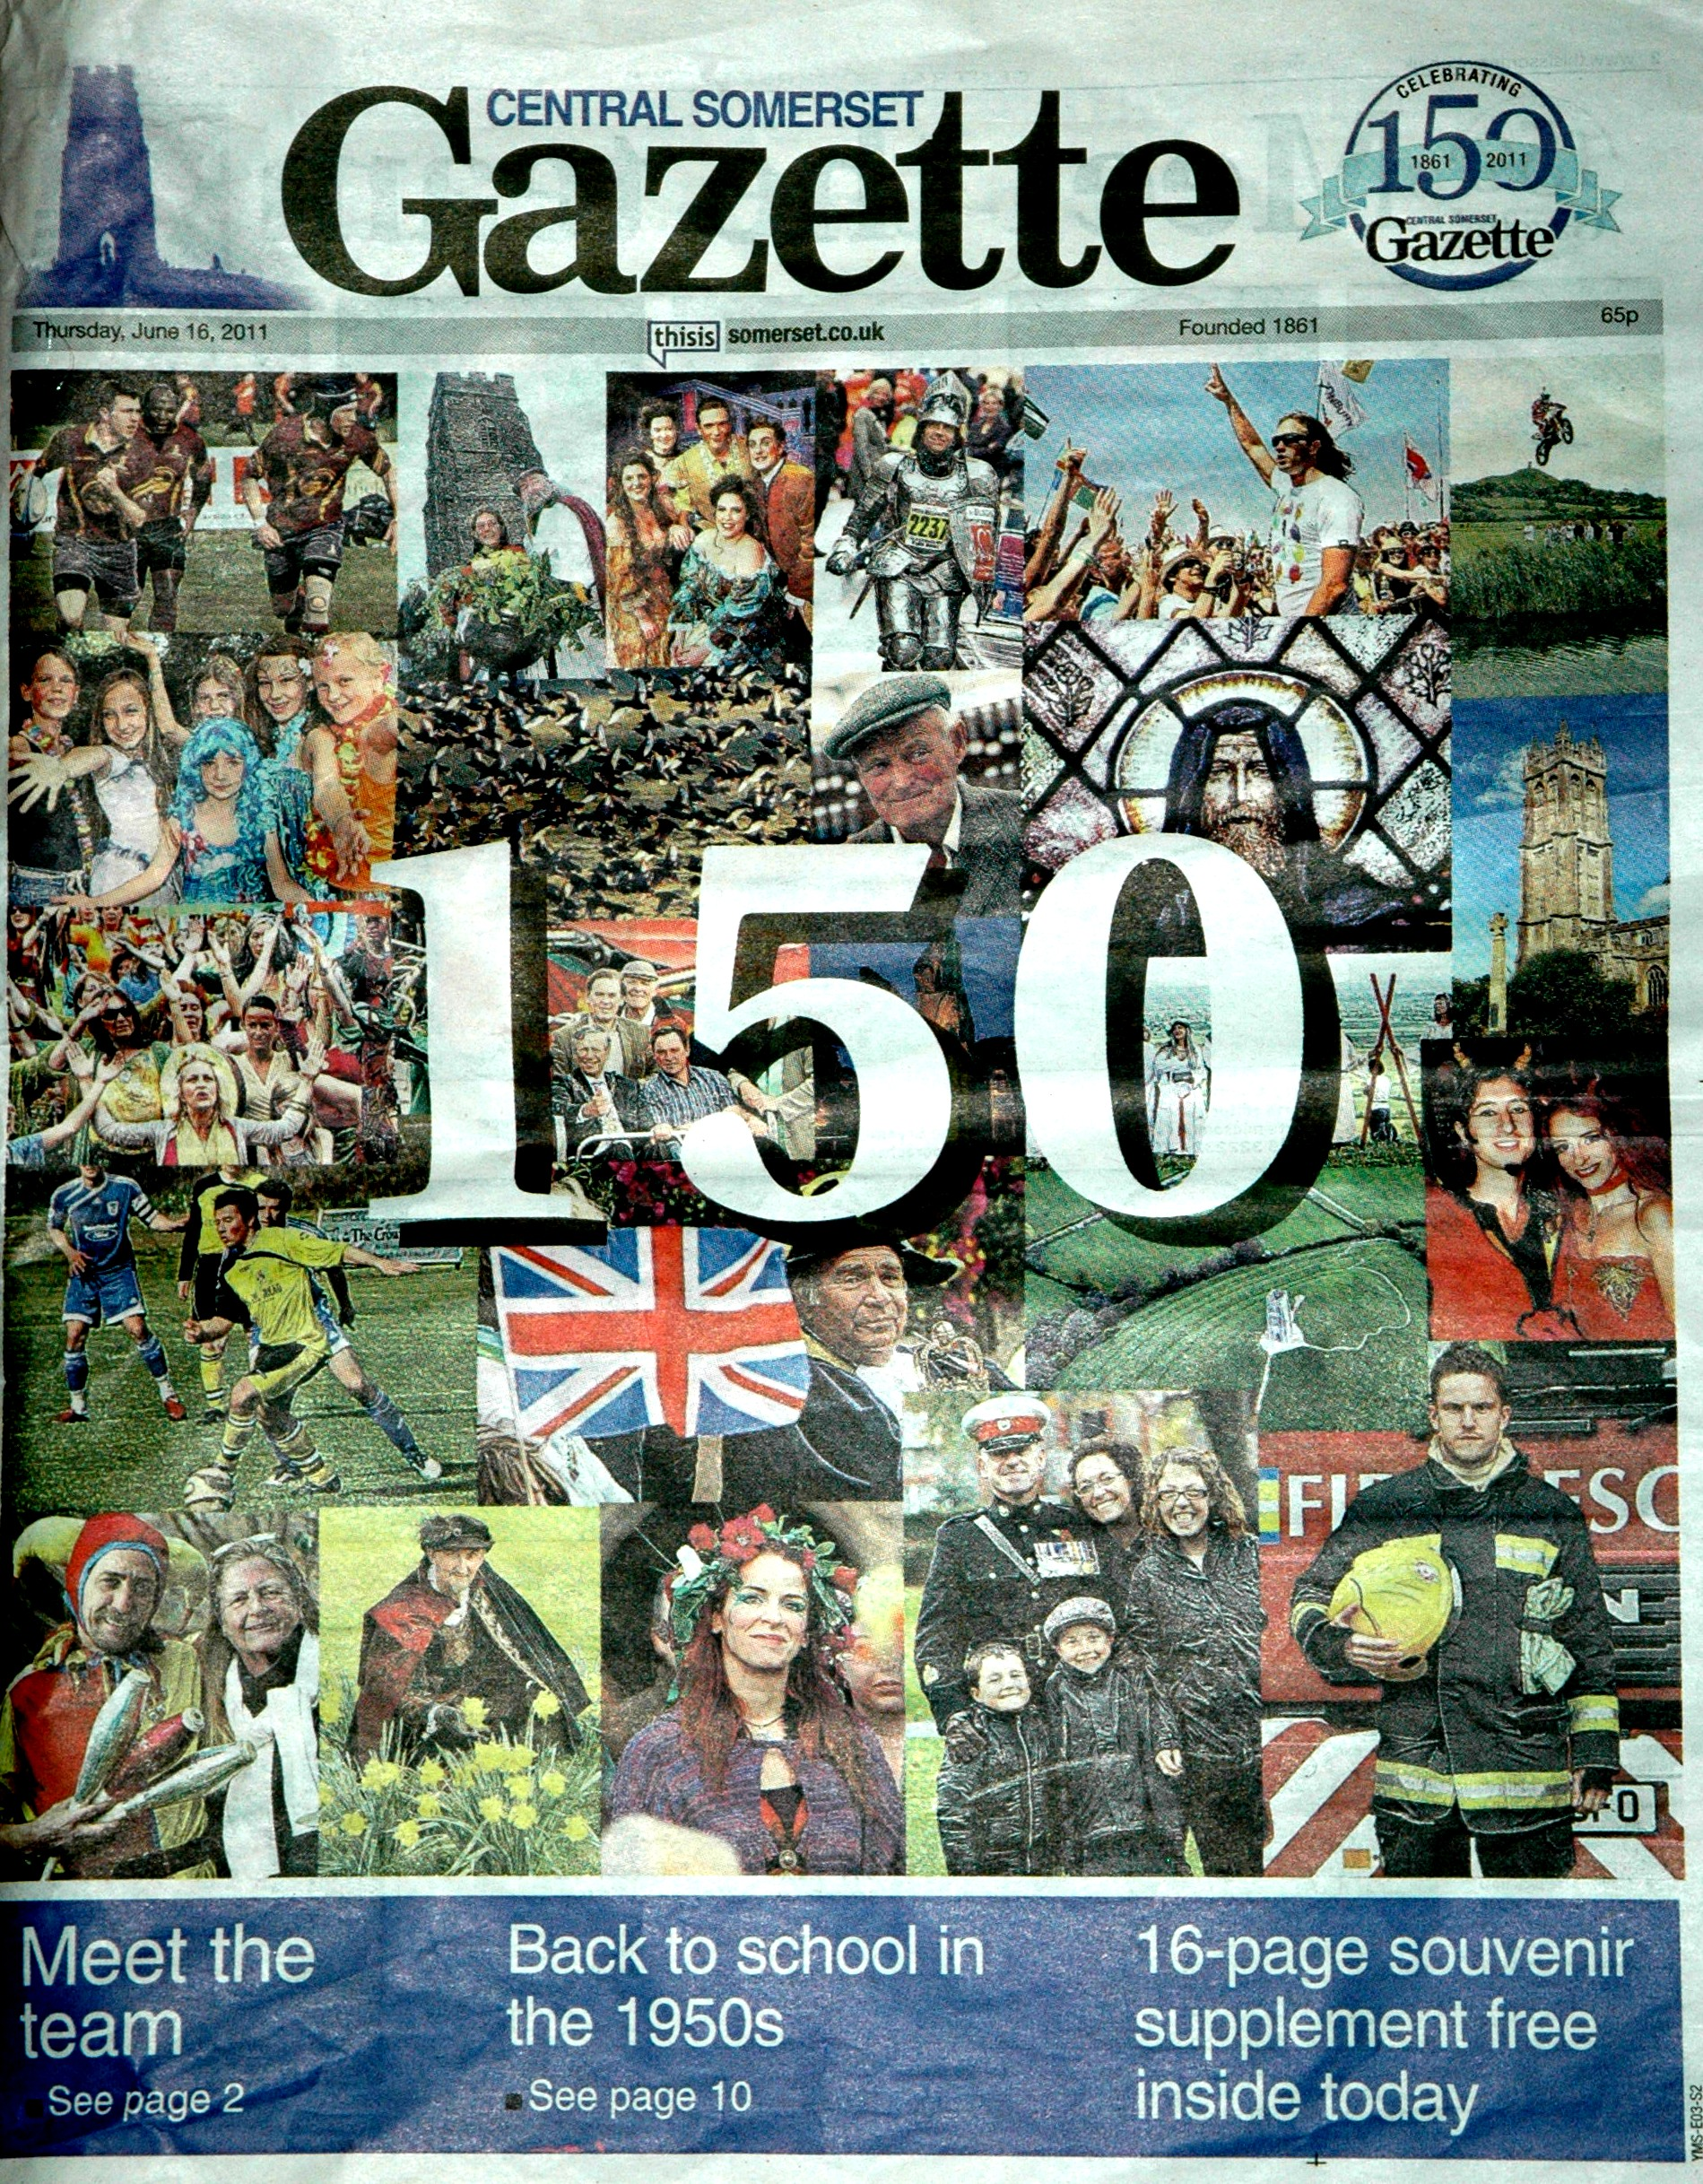 Cover of then Somerset Gazette 2011